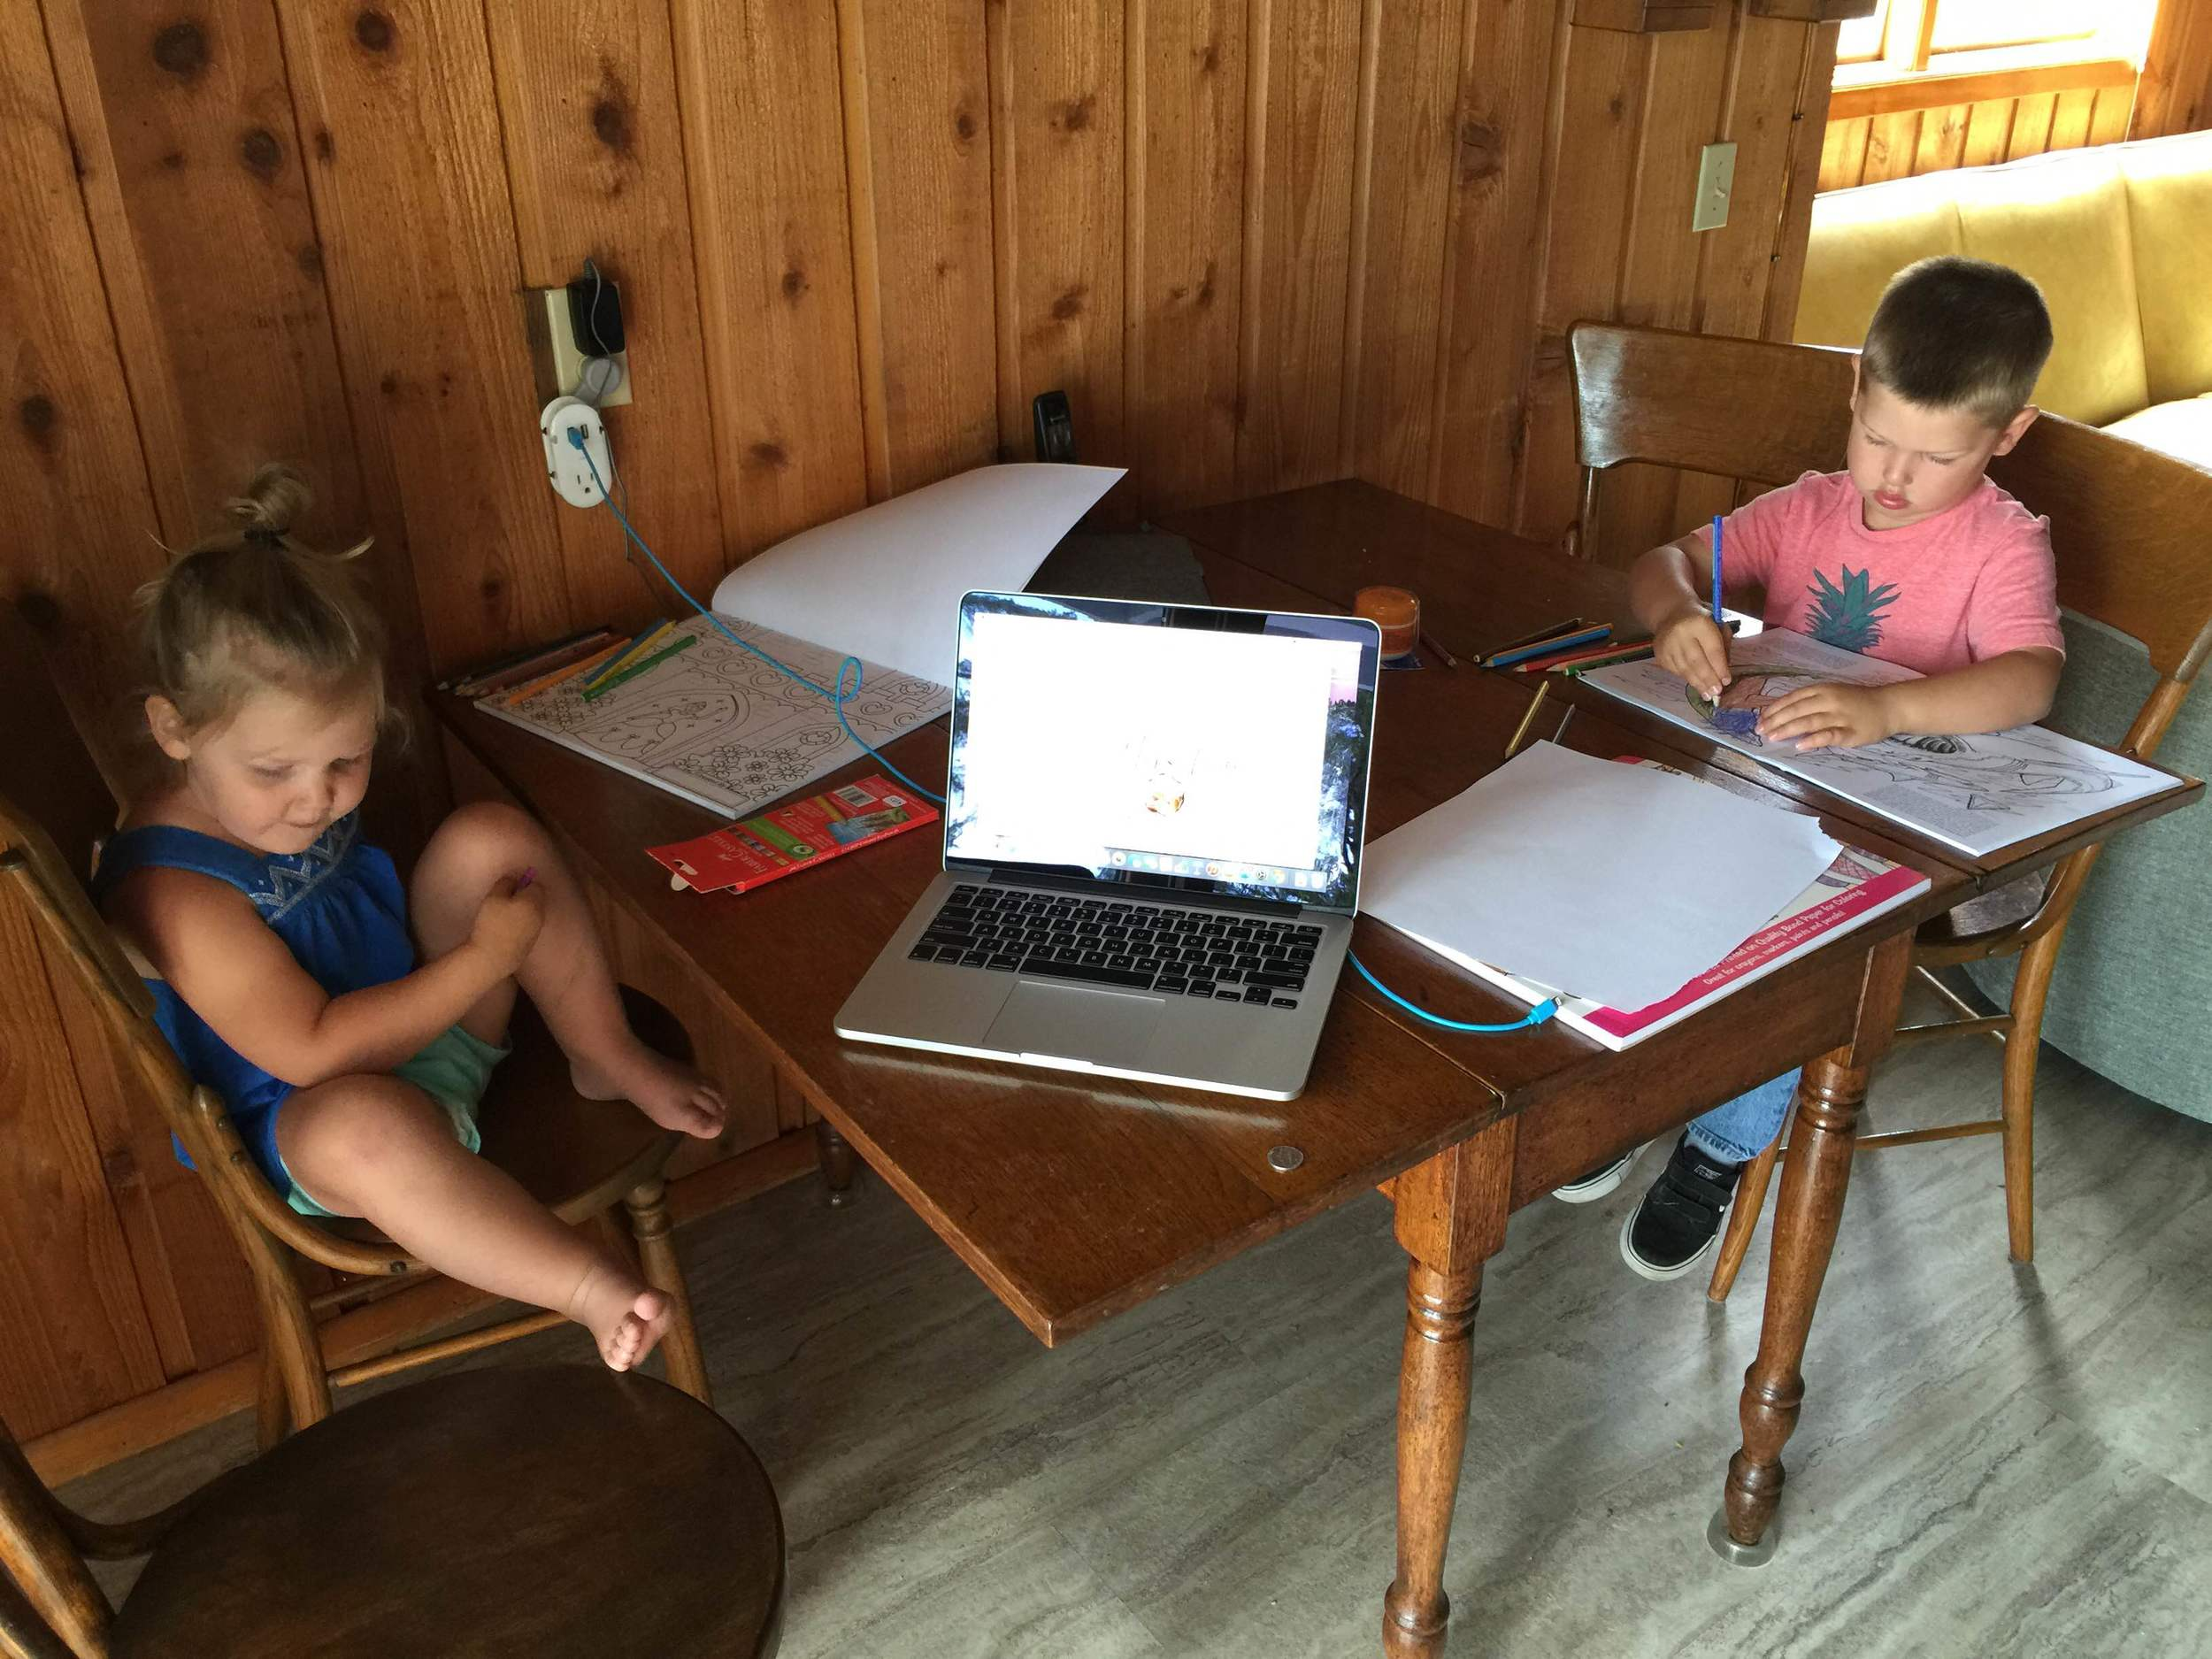 Small Business Owner Vacation | The Editor's Touch